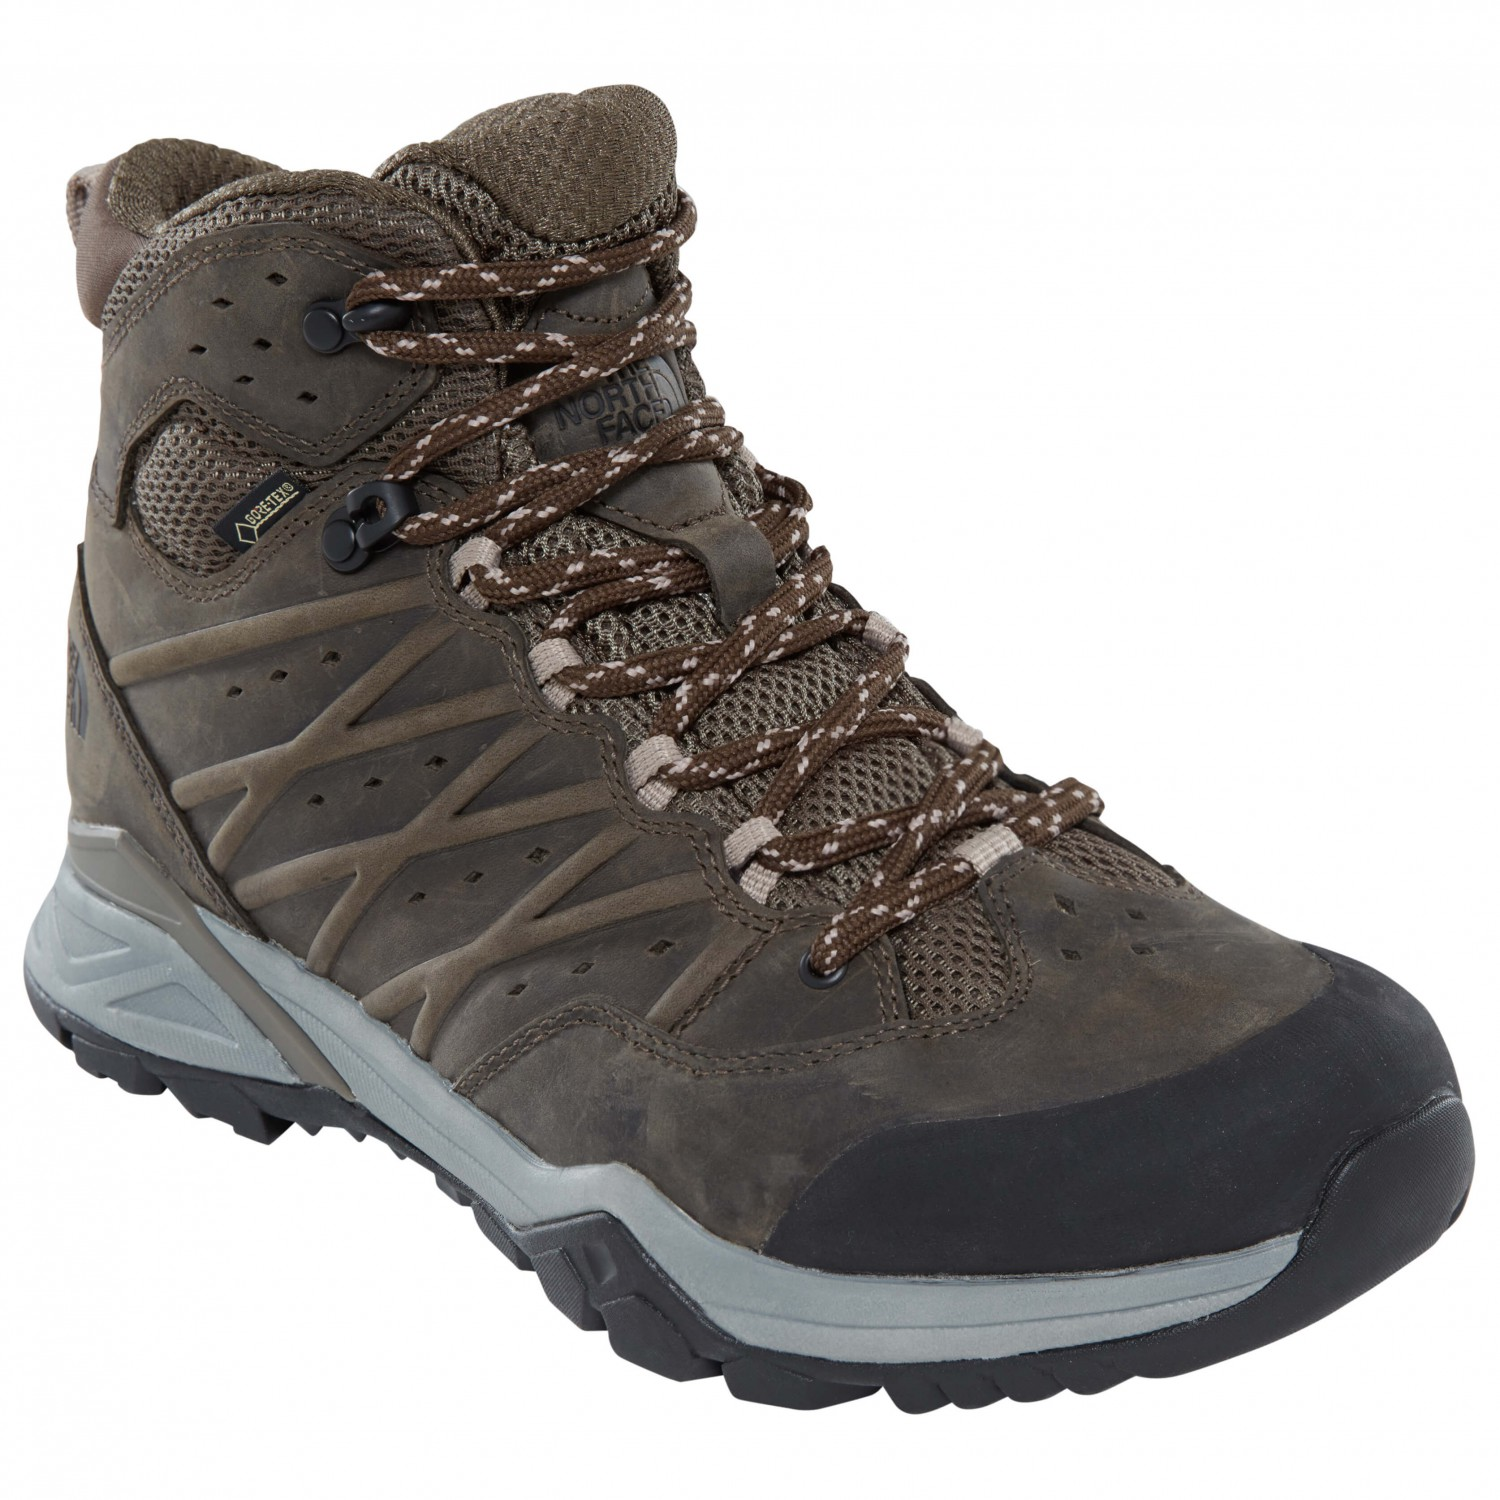 b7dc249eb The North Face - Hedgehog Hike II Mid GTX - Walking boots - TNF Black /  Graphite Grey | 8,5 (US)